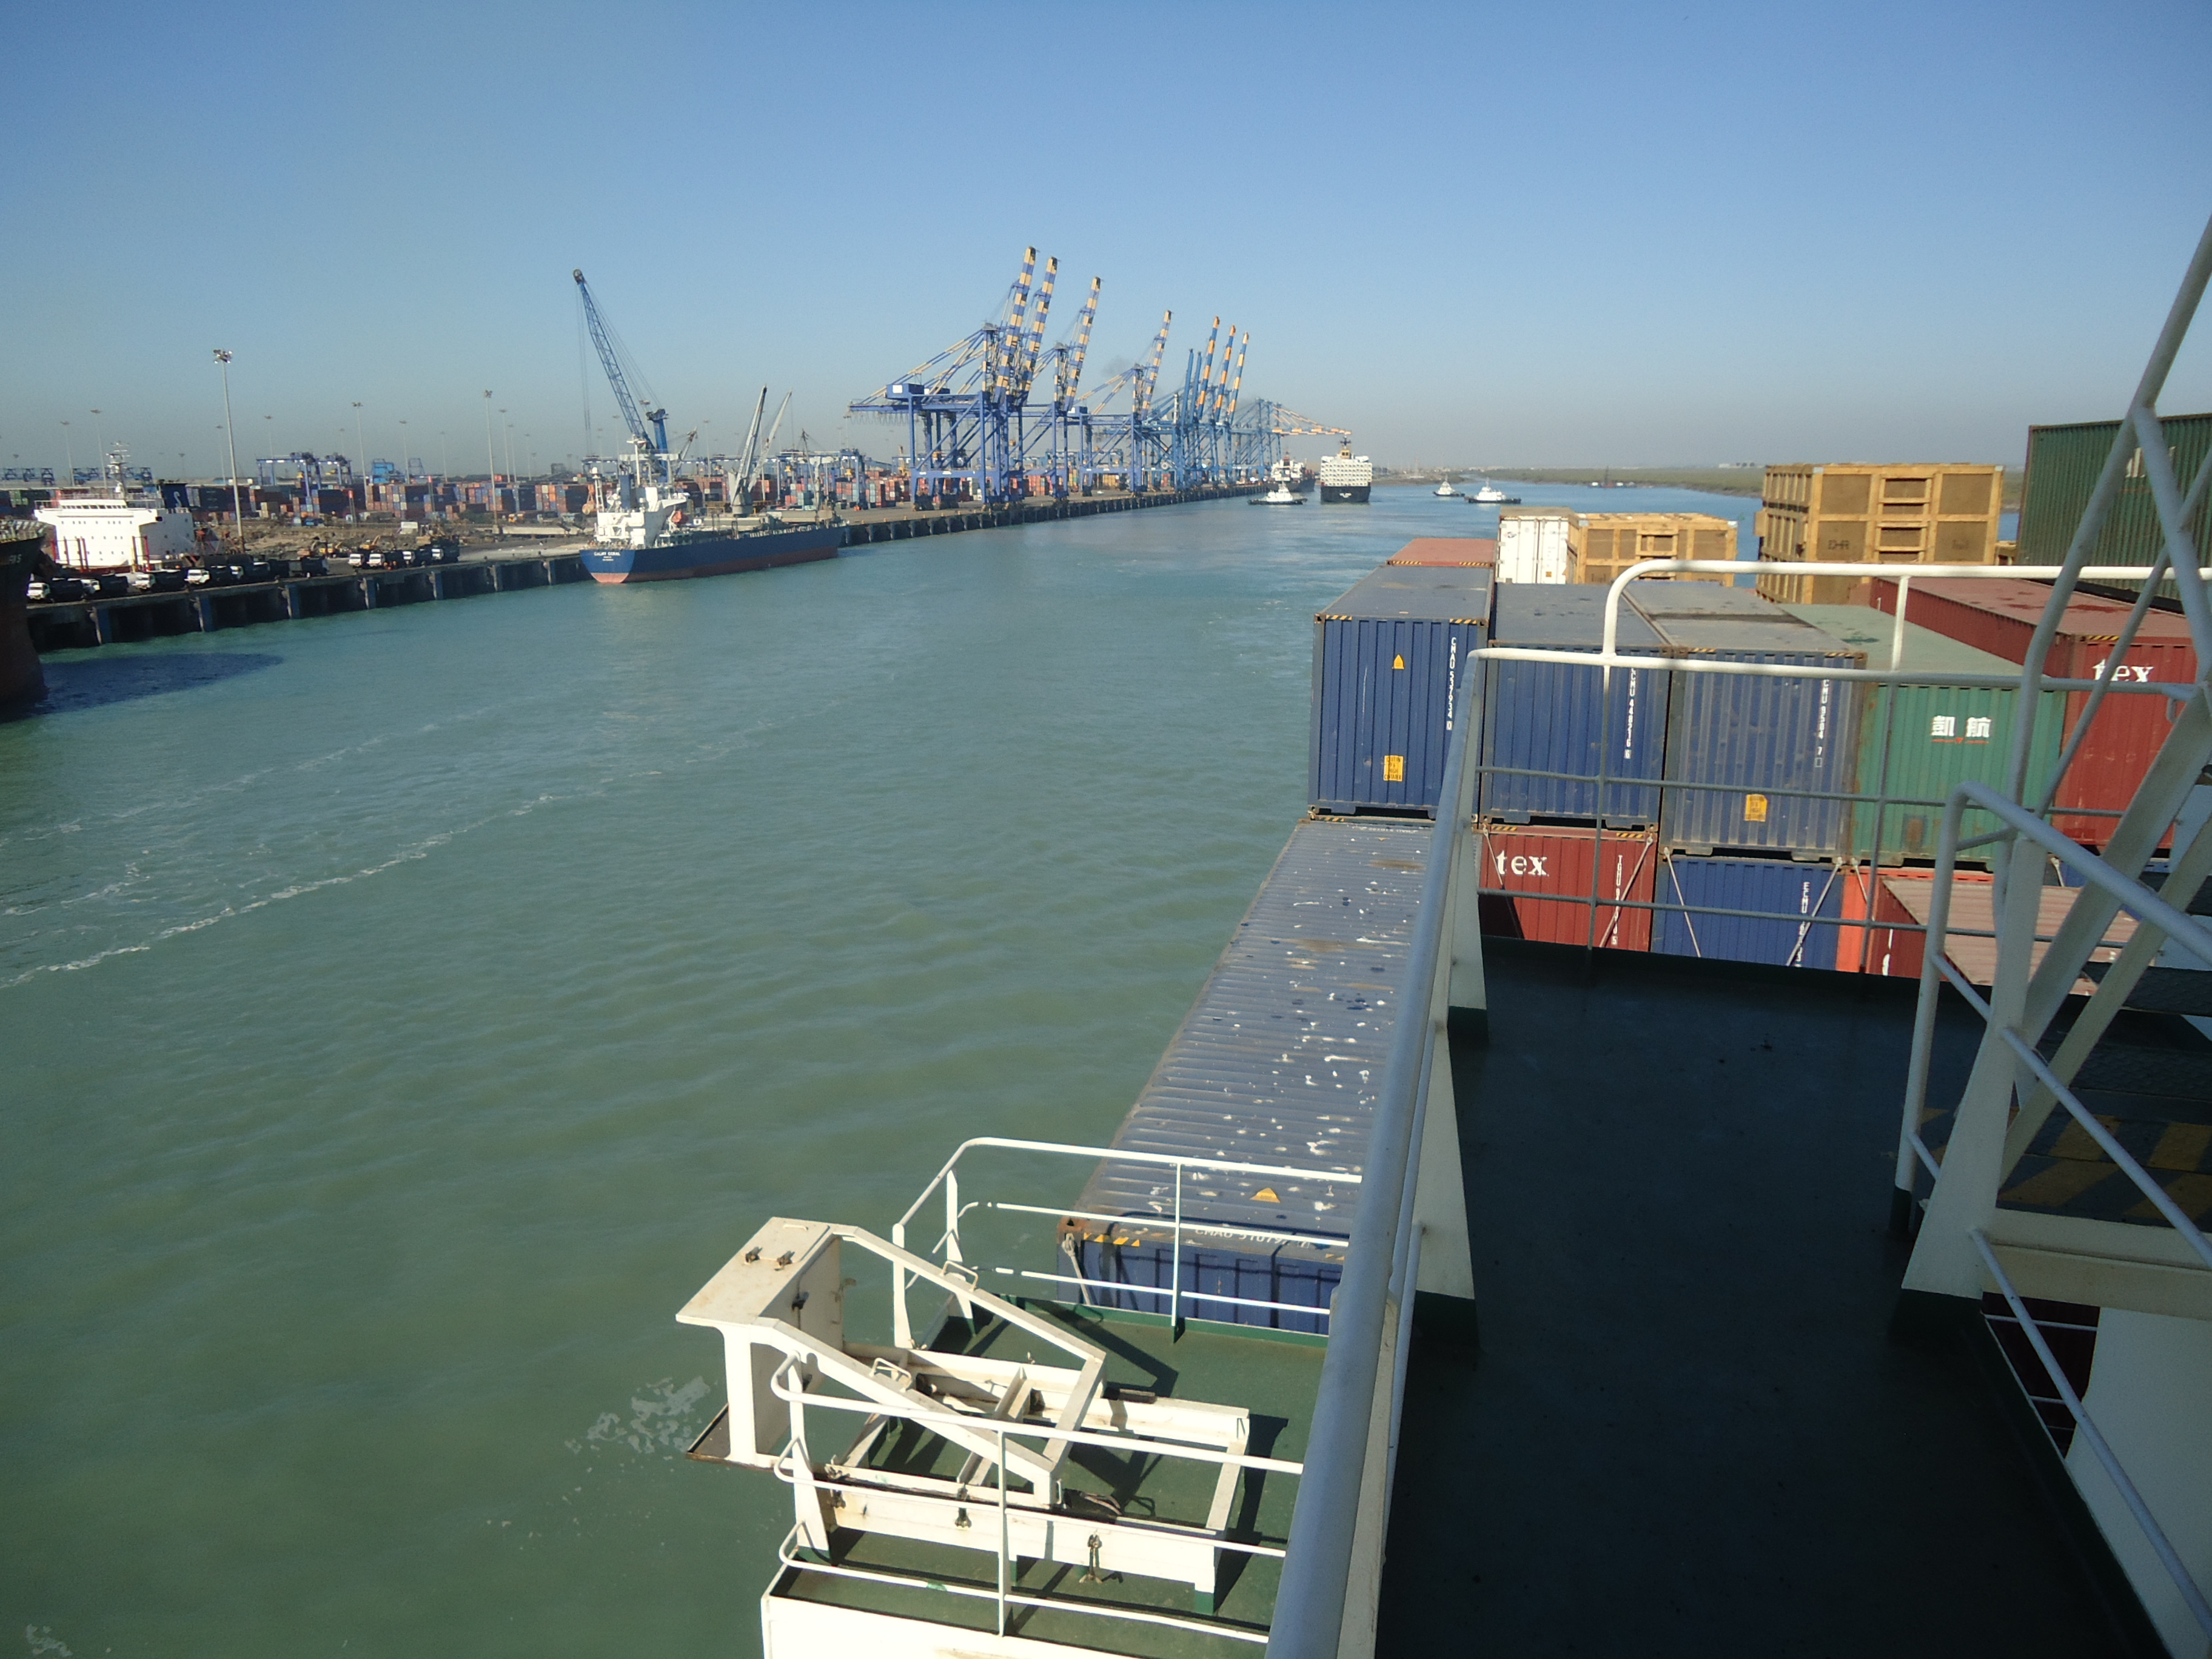 Adani's port complex at Mundra. Photo courtesy Google Images